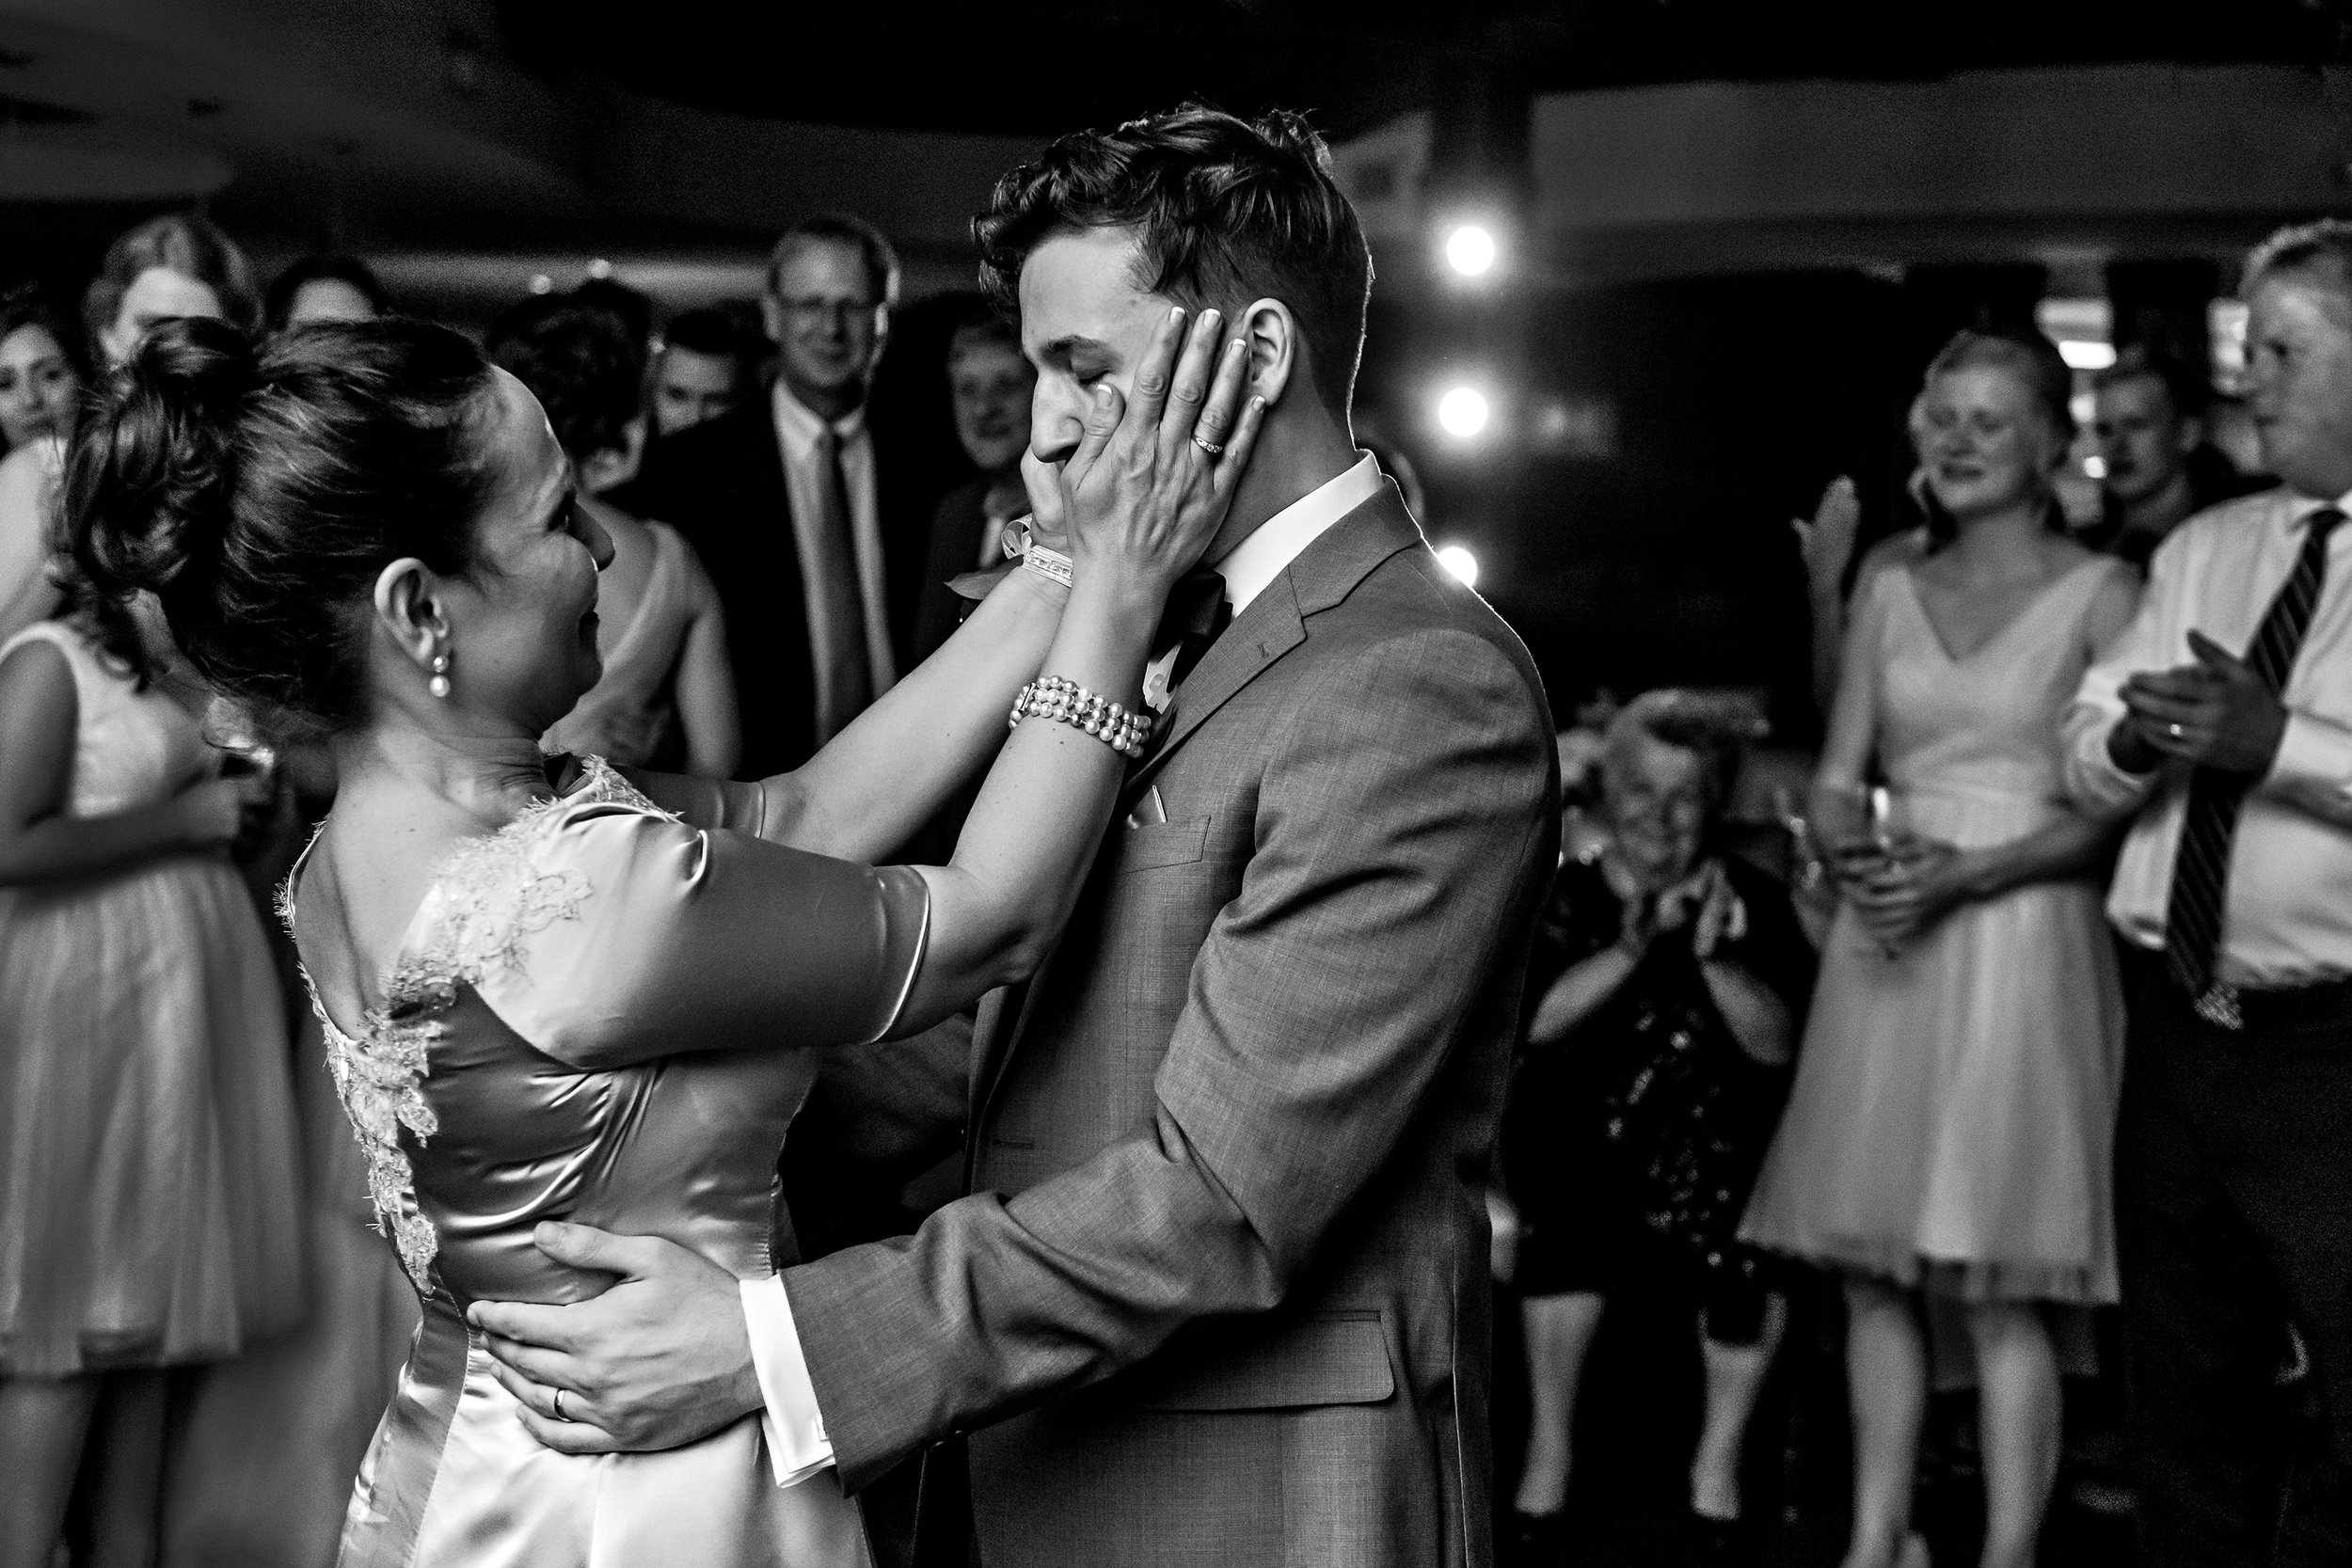 mother-and-son-have-a-moment-on-the-dance-floor-during-a-wedding-reception-at-a-lago-wedding-ottawa.jpg